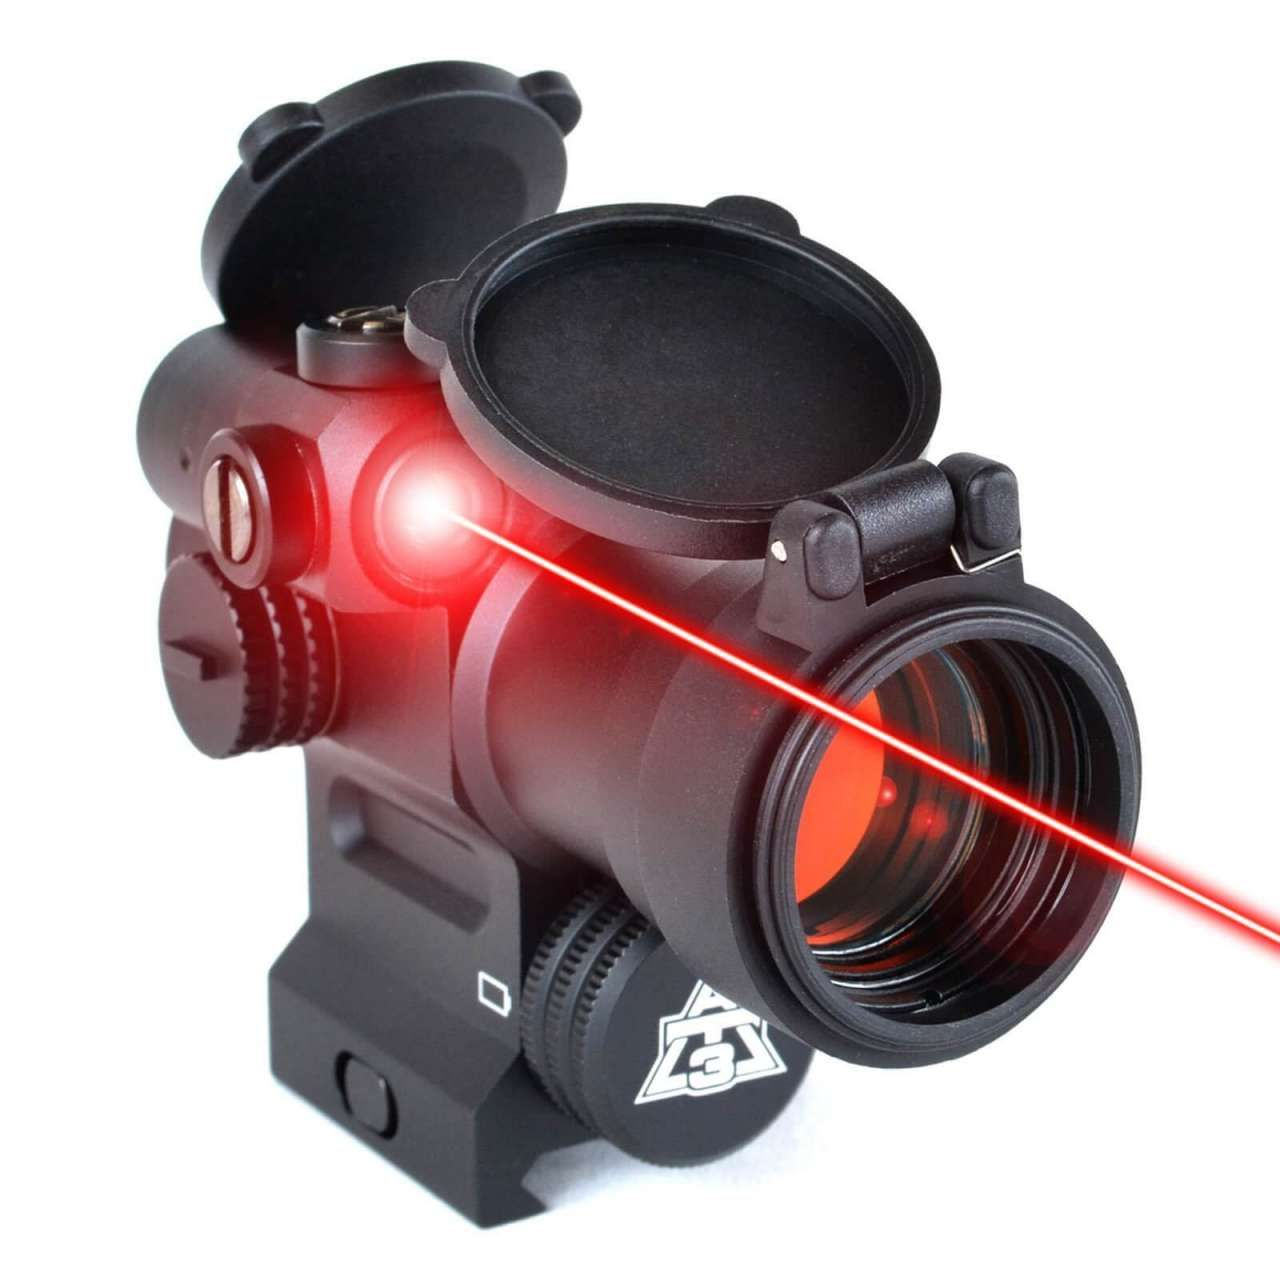 The At3 Leos Red Laser Enabled Optic System Is Accurate Versatile Reliable Packed With Features Thunder Tactical Red Dot Sight Green Laser Lens Caps